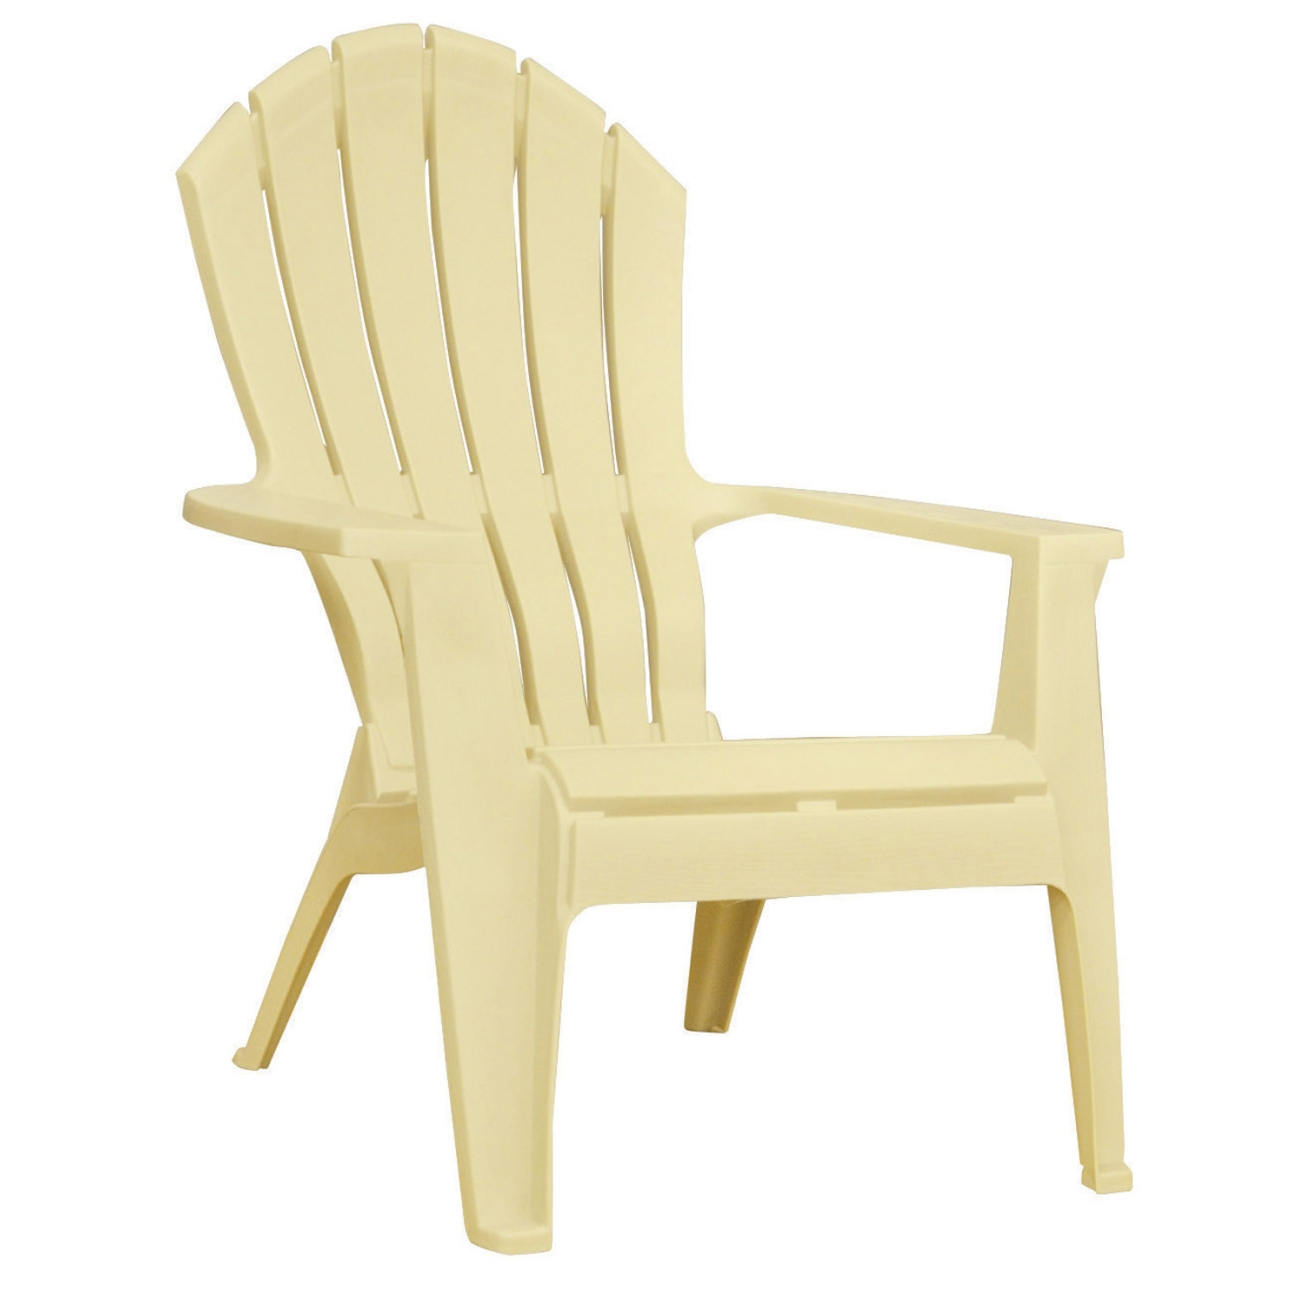 Images of plastic adirondack chairs adams adirondack stacking chair in banana - ace hardware hzueaov